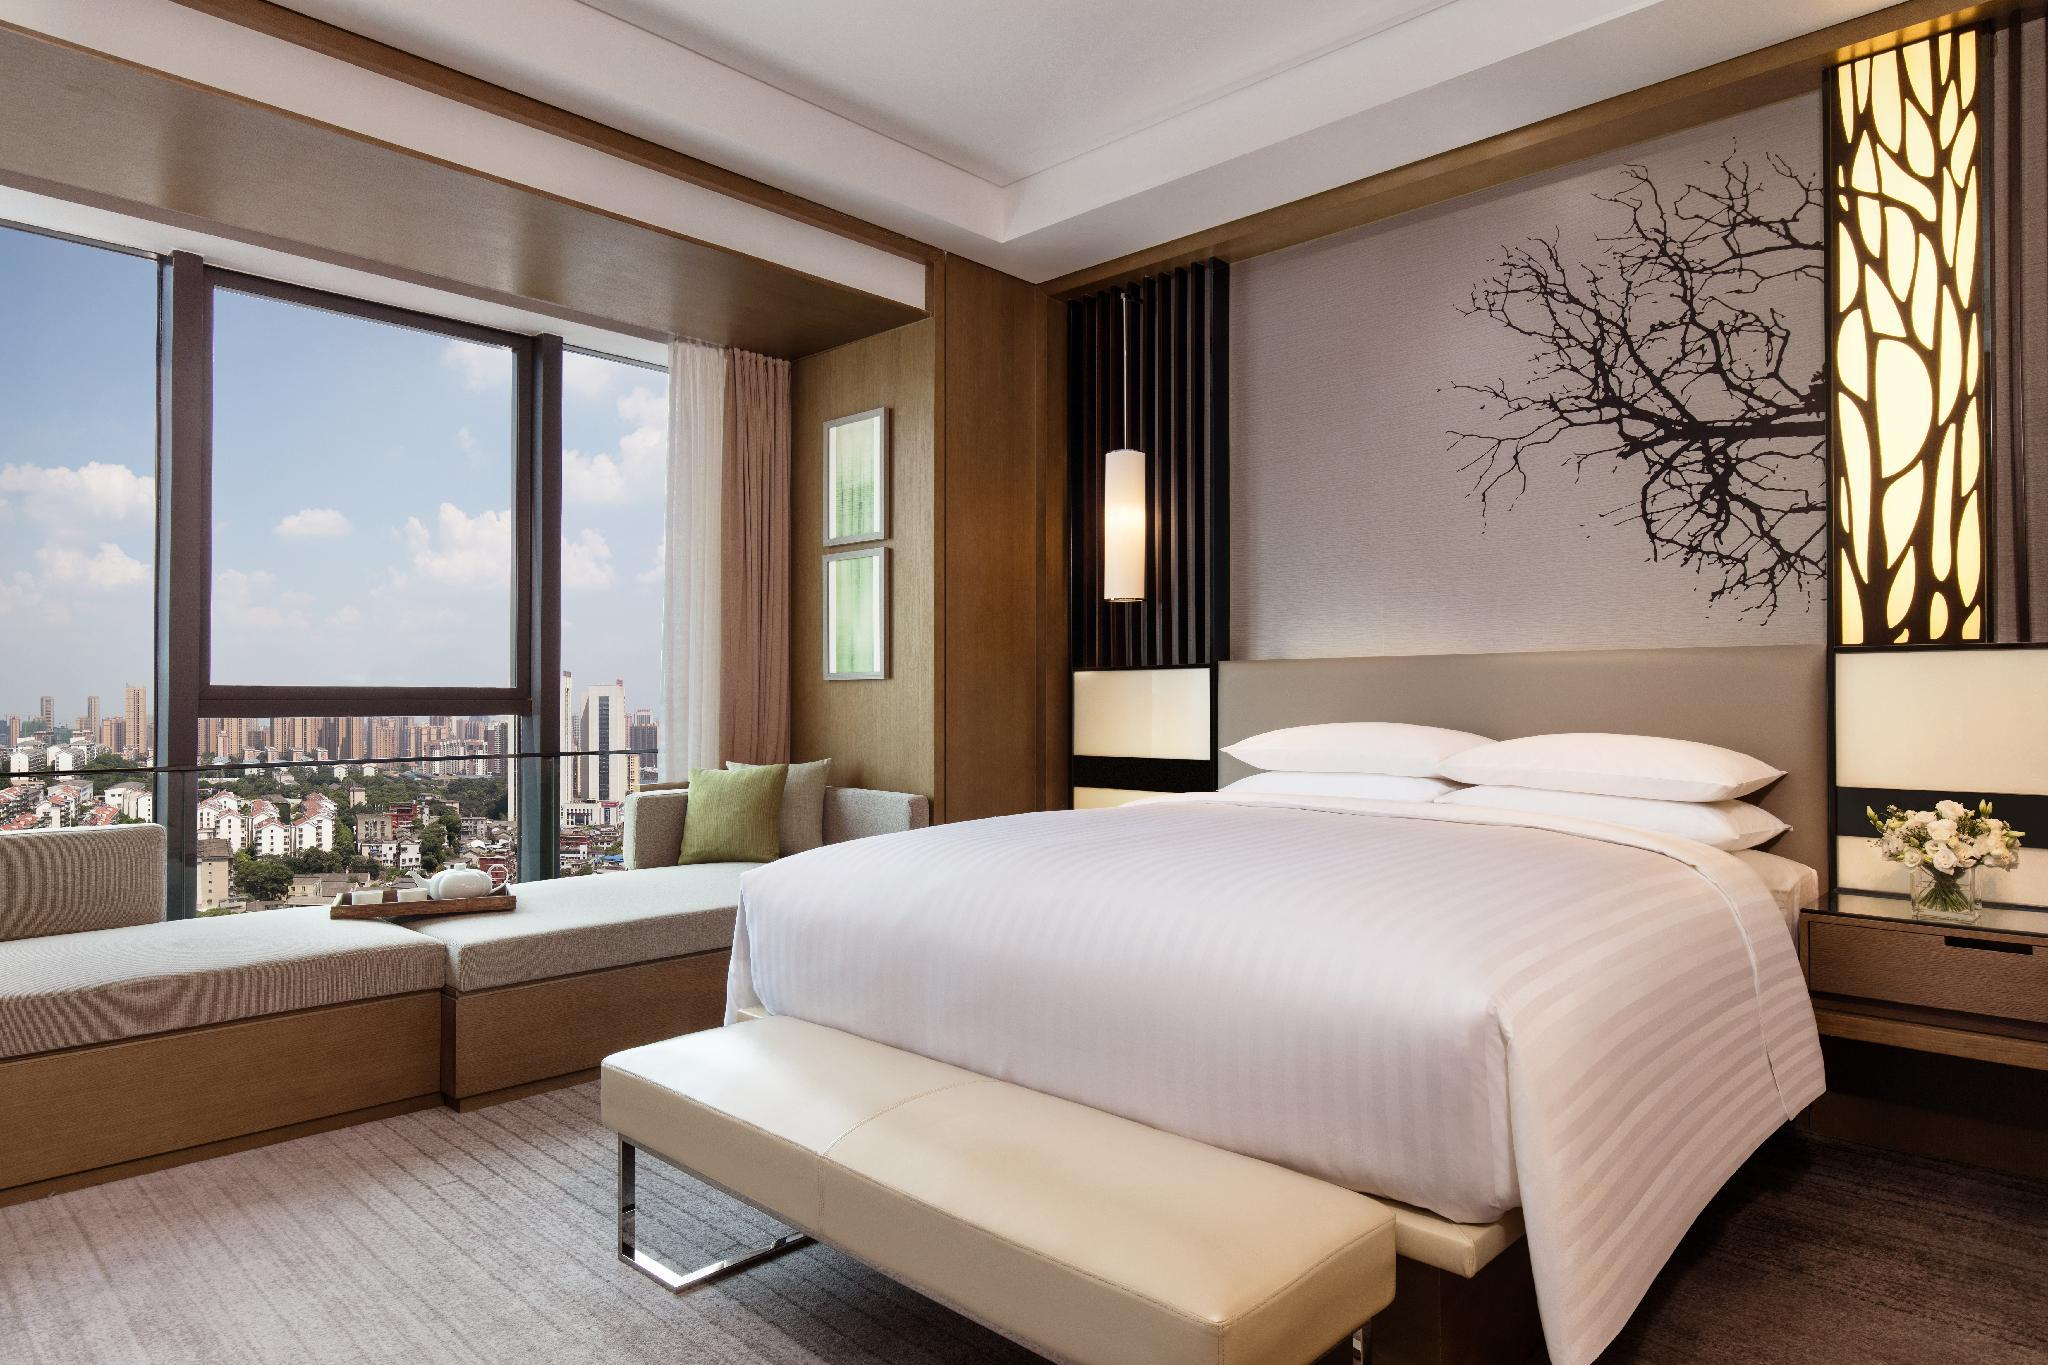 Standard Room, Guest room, 1 King, City view